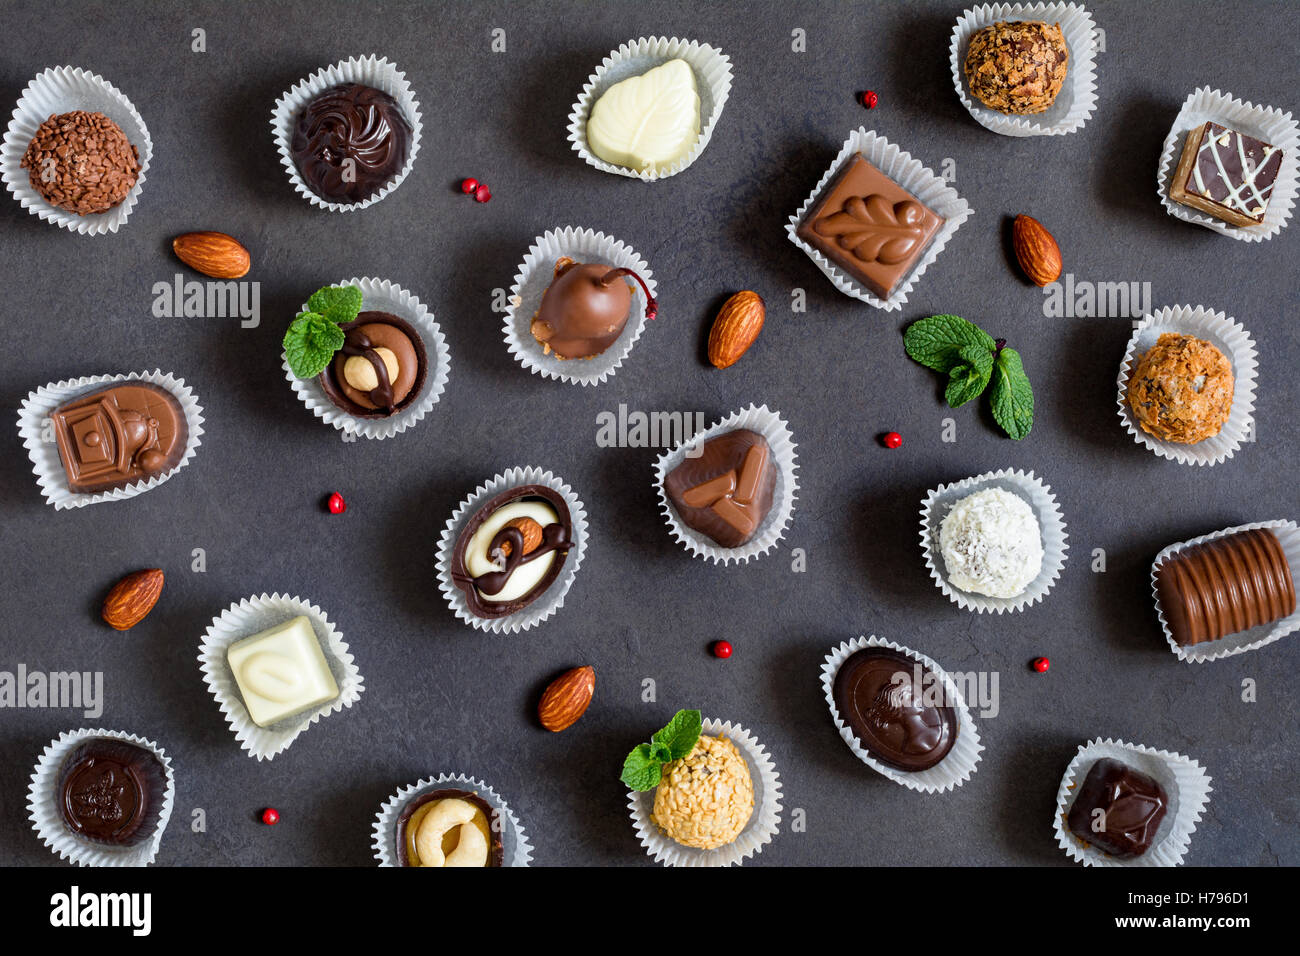 Fine chocolates pattern on dark background - Stock Image